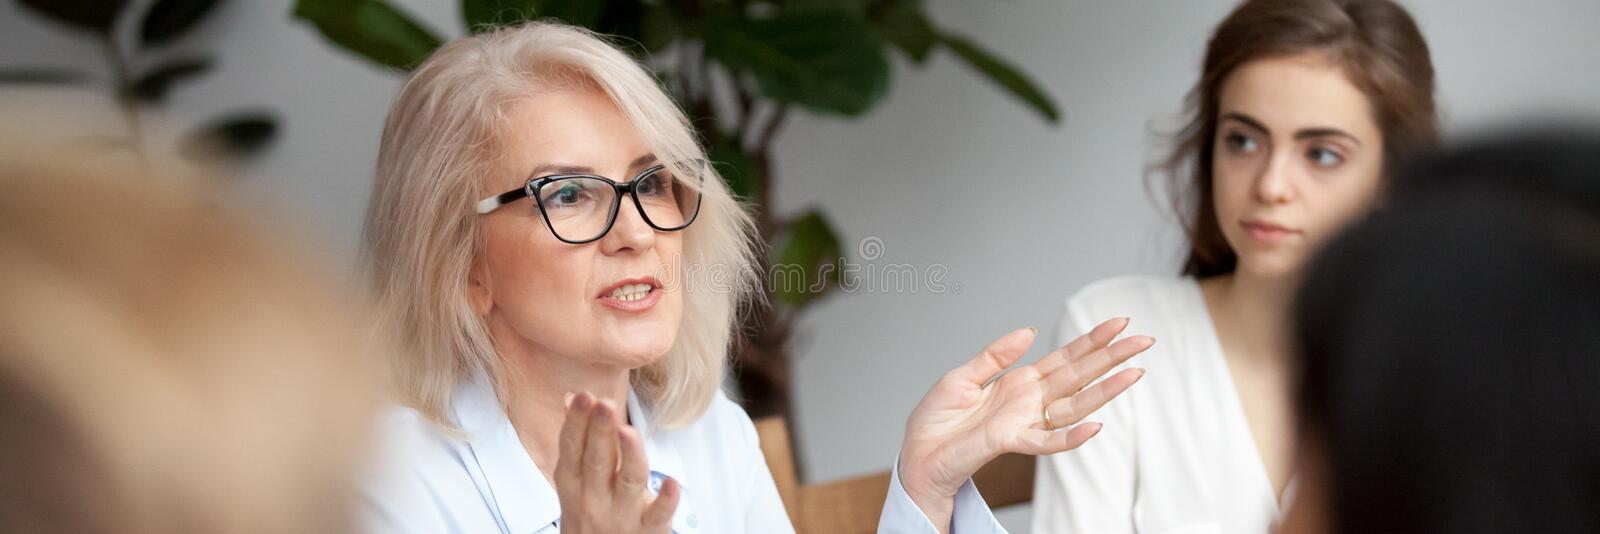 Businesswoman mentor give instructions to young professional intern during seminar. Aged businesswoman coach teach give instructions knowledge to new employees royalty free stock image